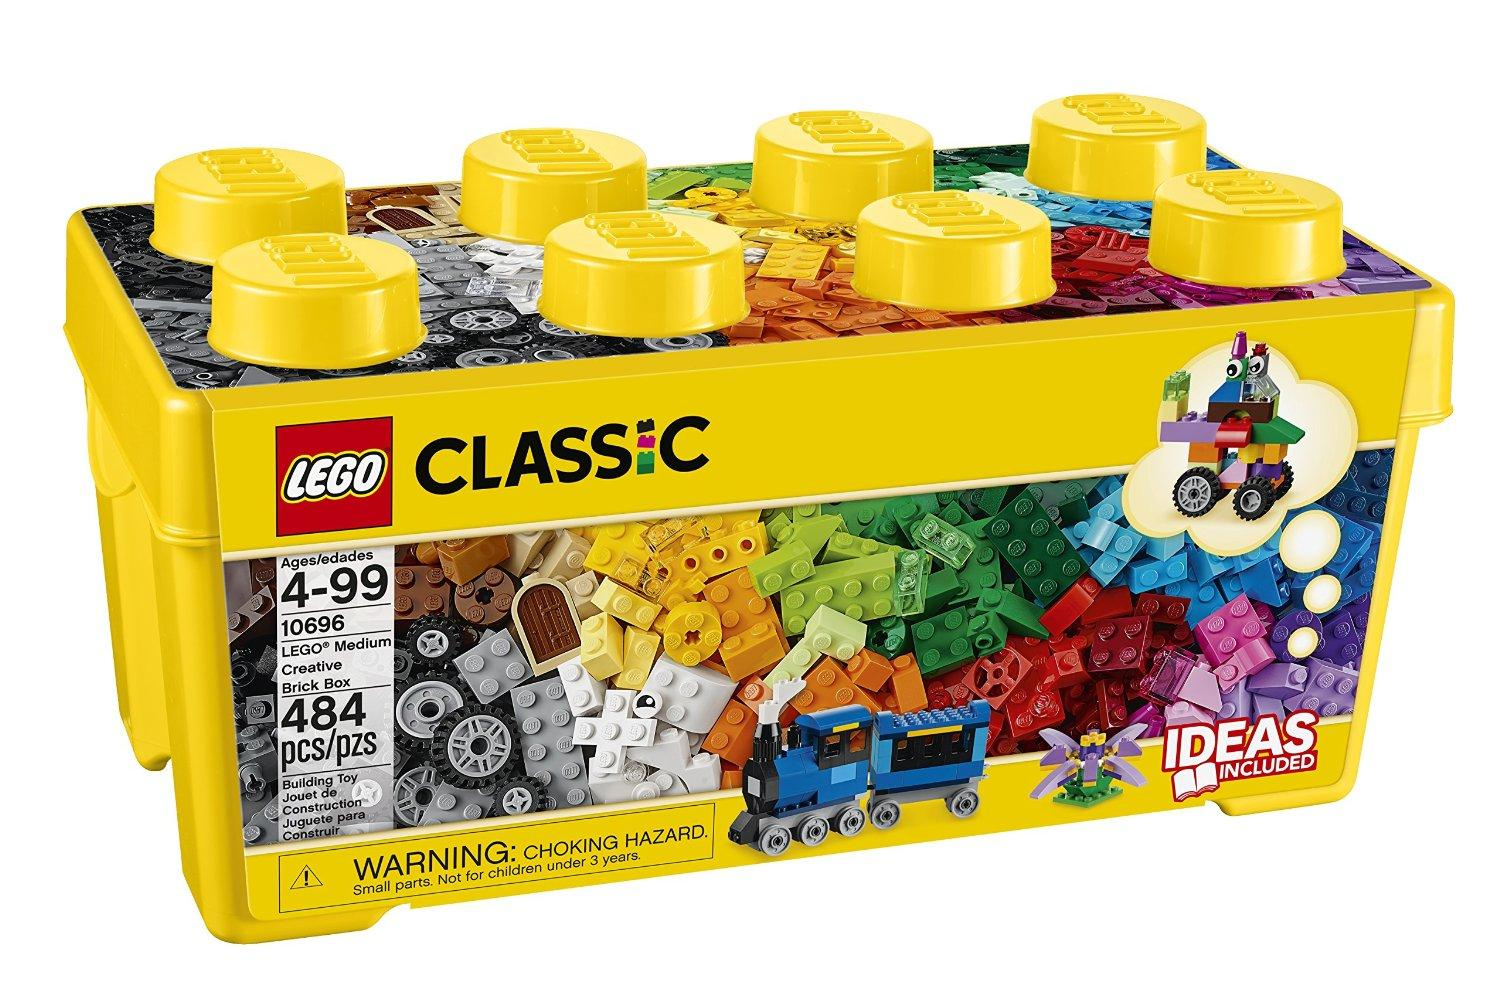 $28.99 LEGO Classic Medium Creative Brick Box @ Amazon